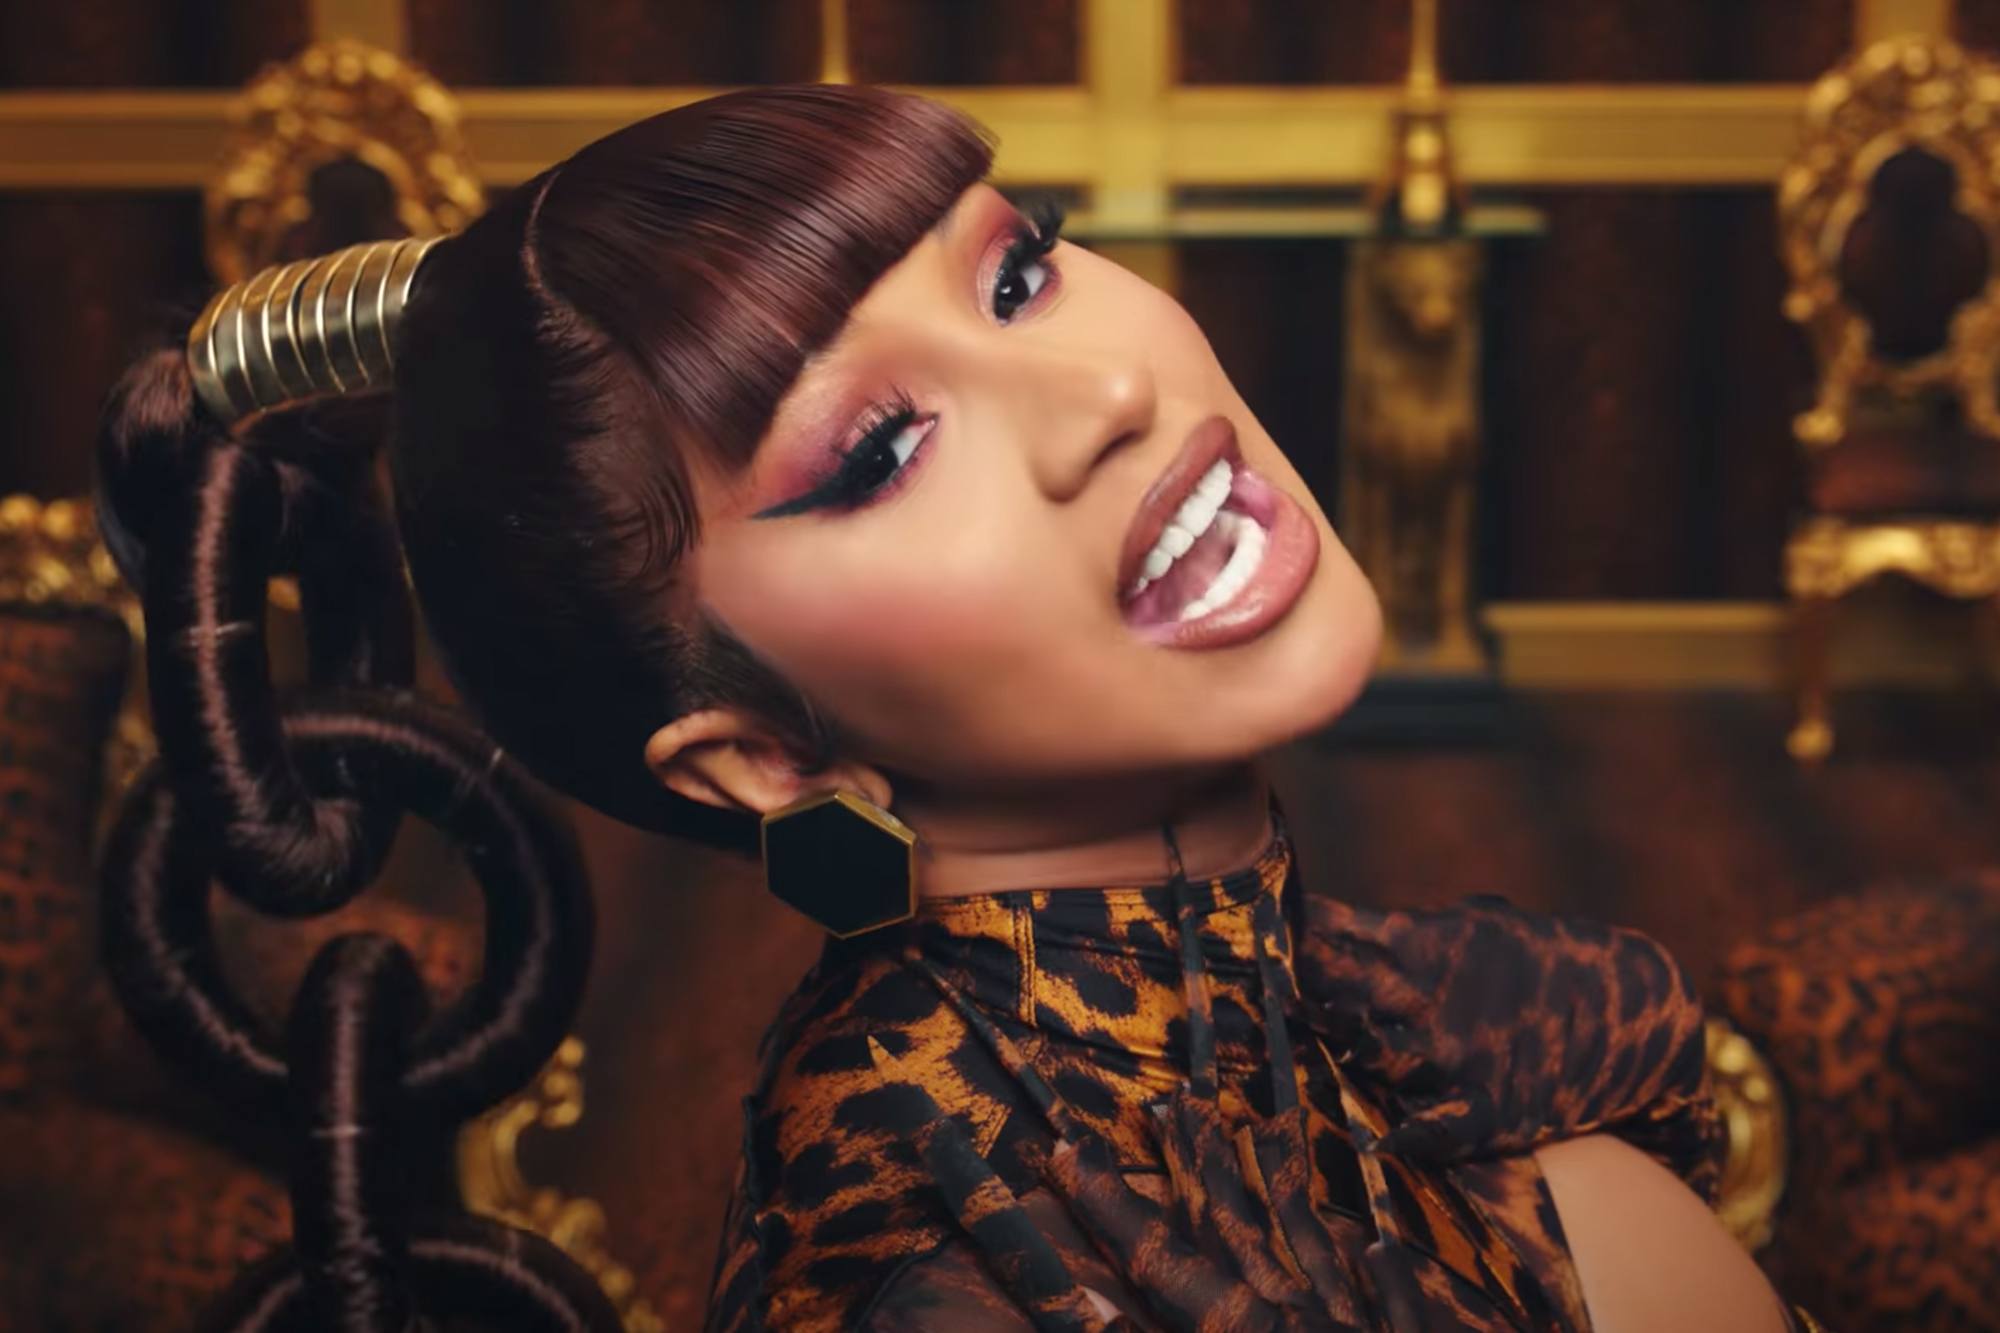 Cardi B says COVID-19 testing for WAP video cost $100,000